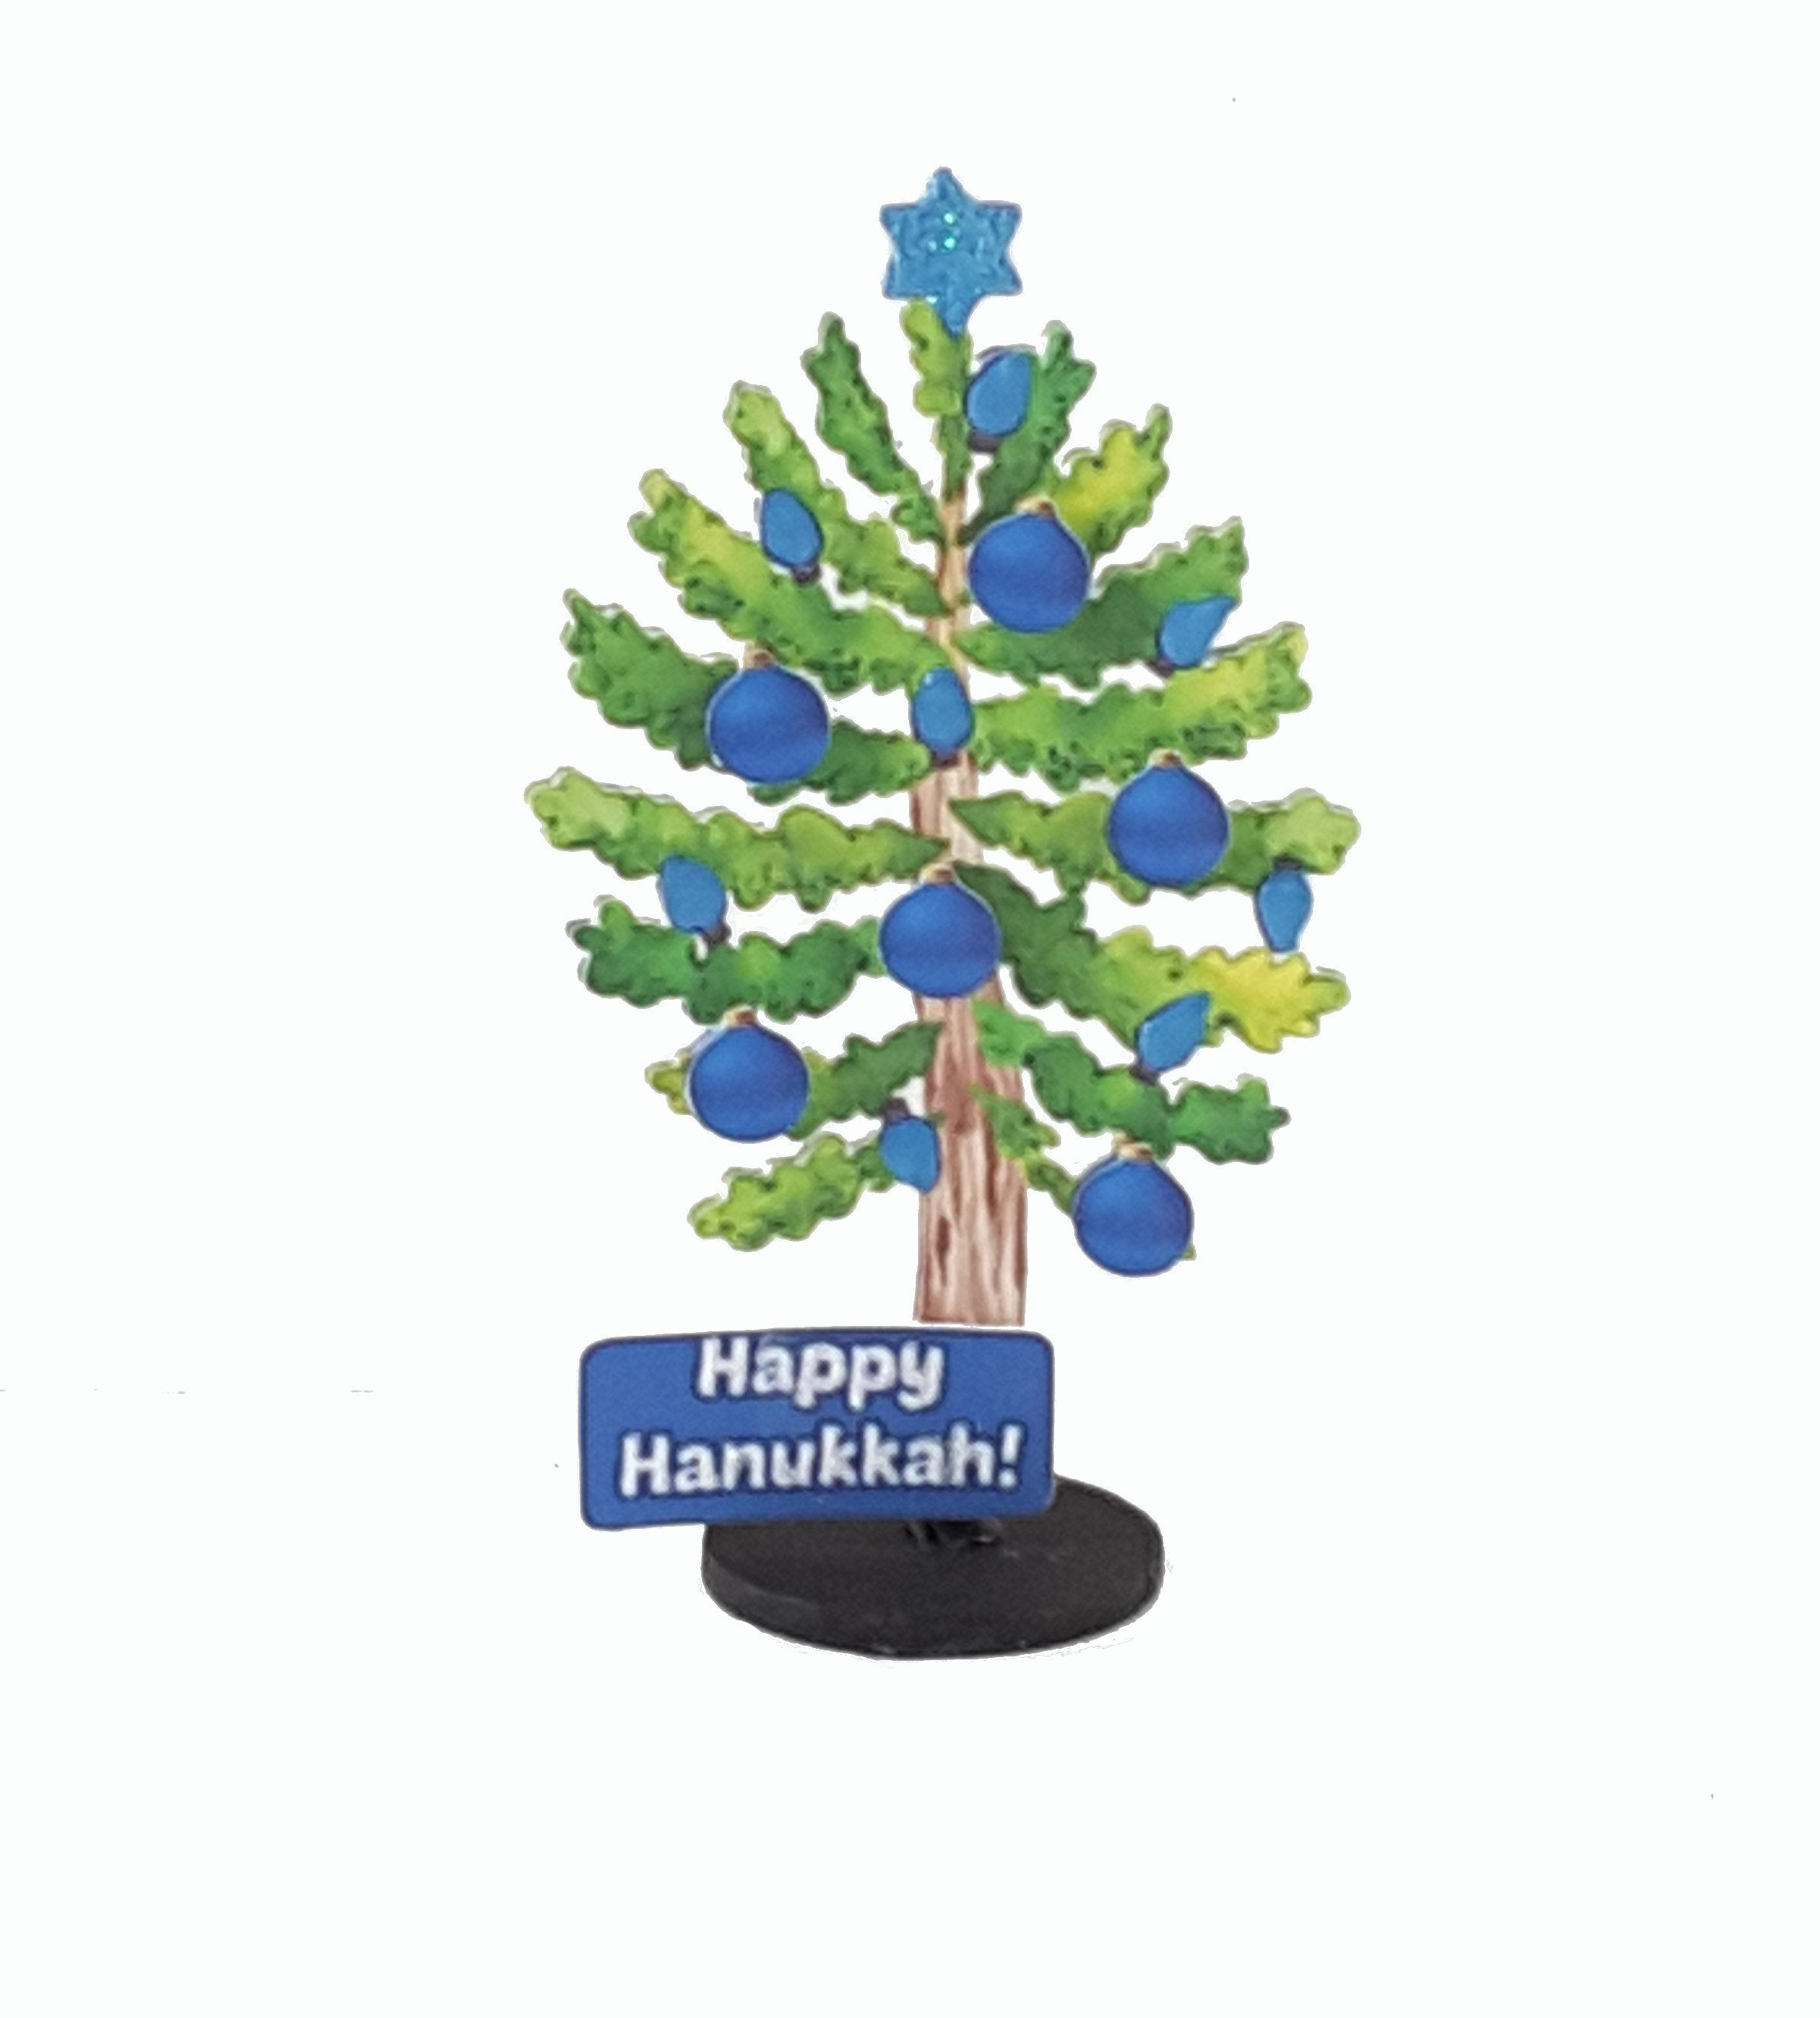 Hanukkah Card with Stand Up Tree, Hanukkah Gift - TheLastWordBish.com